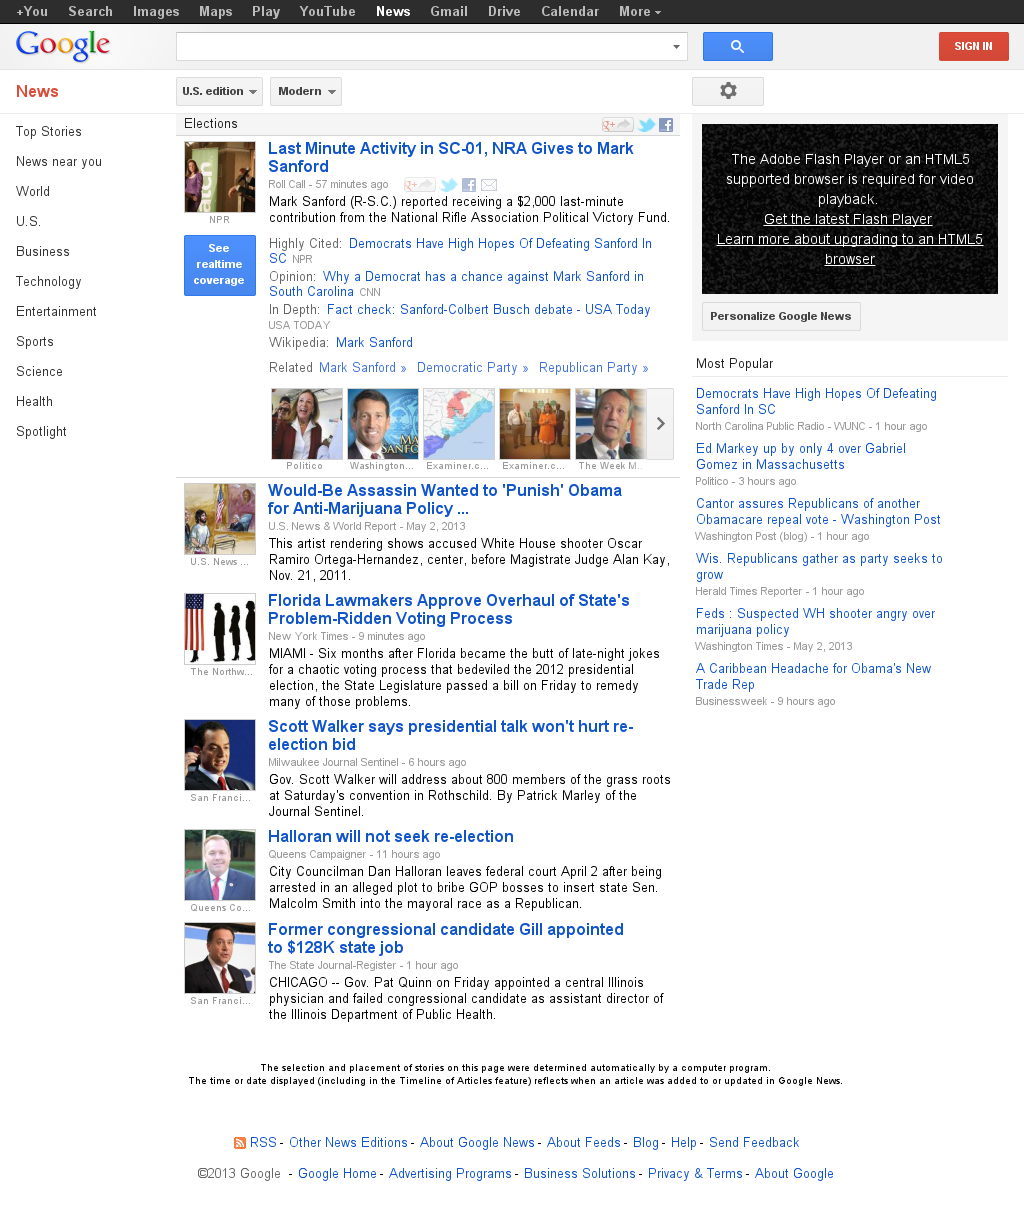 Google News: Elections at Saturday May 4, 2013, 1:10 a.m. UTC